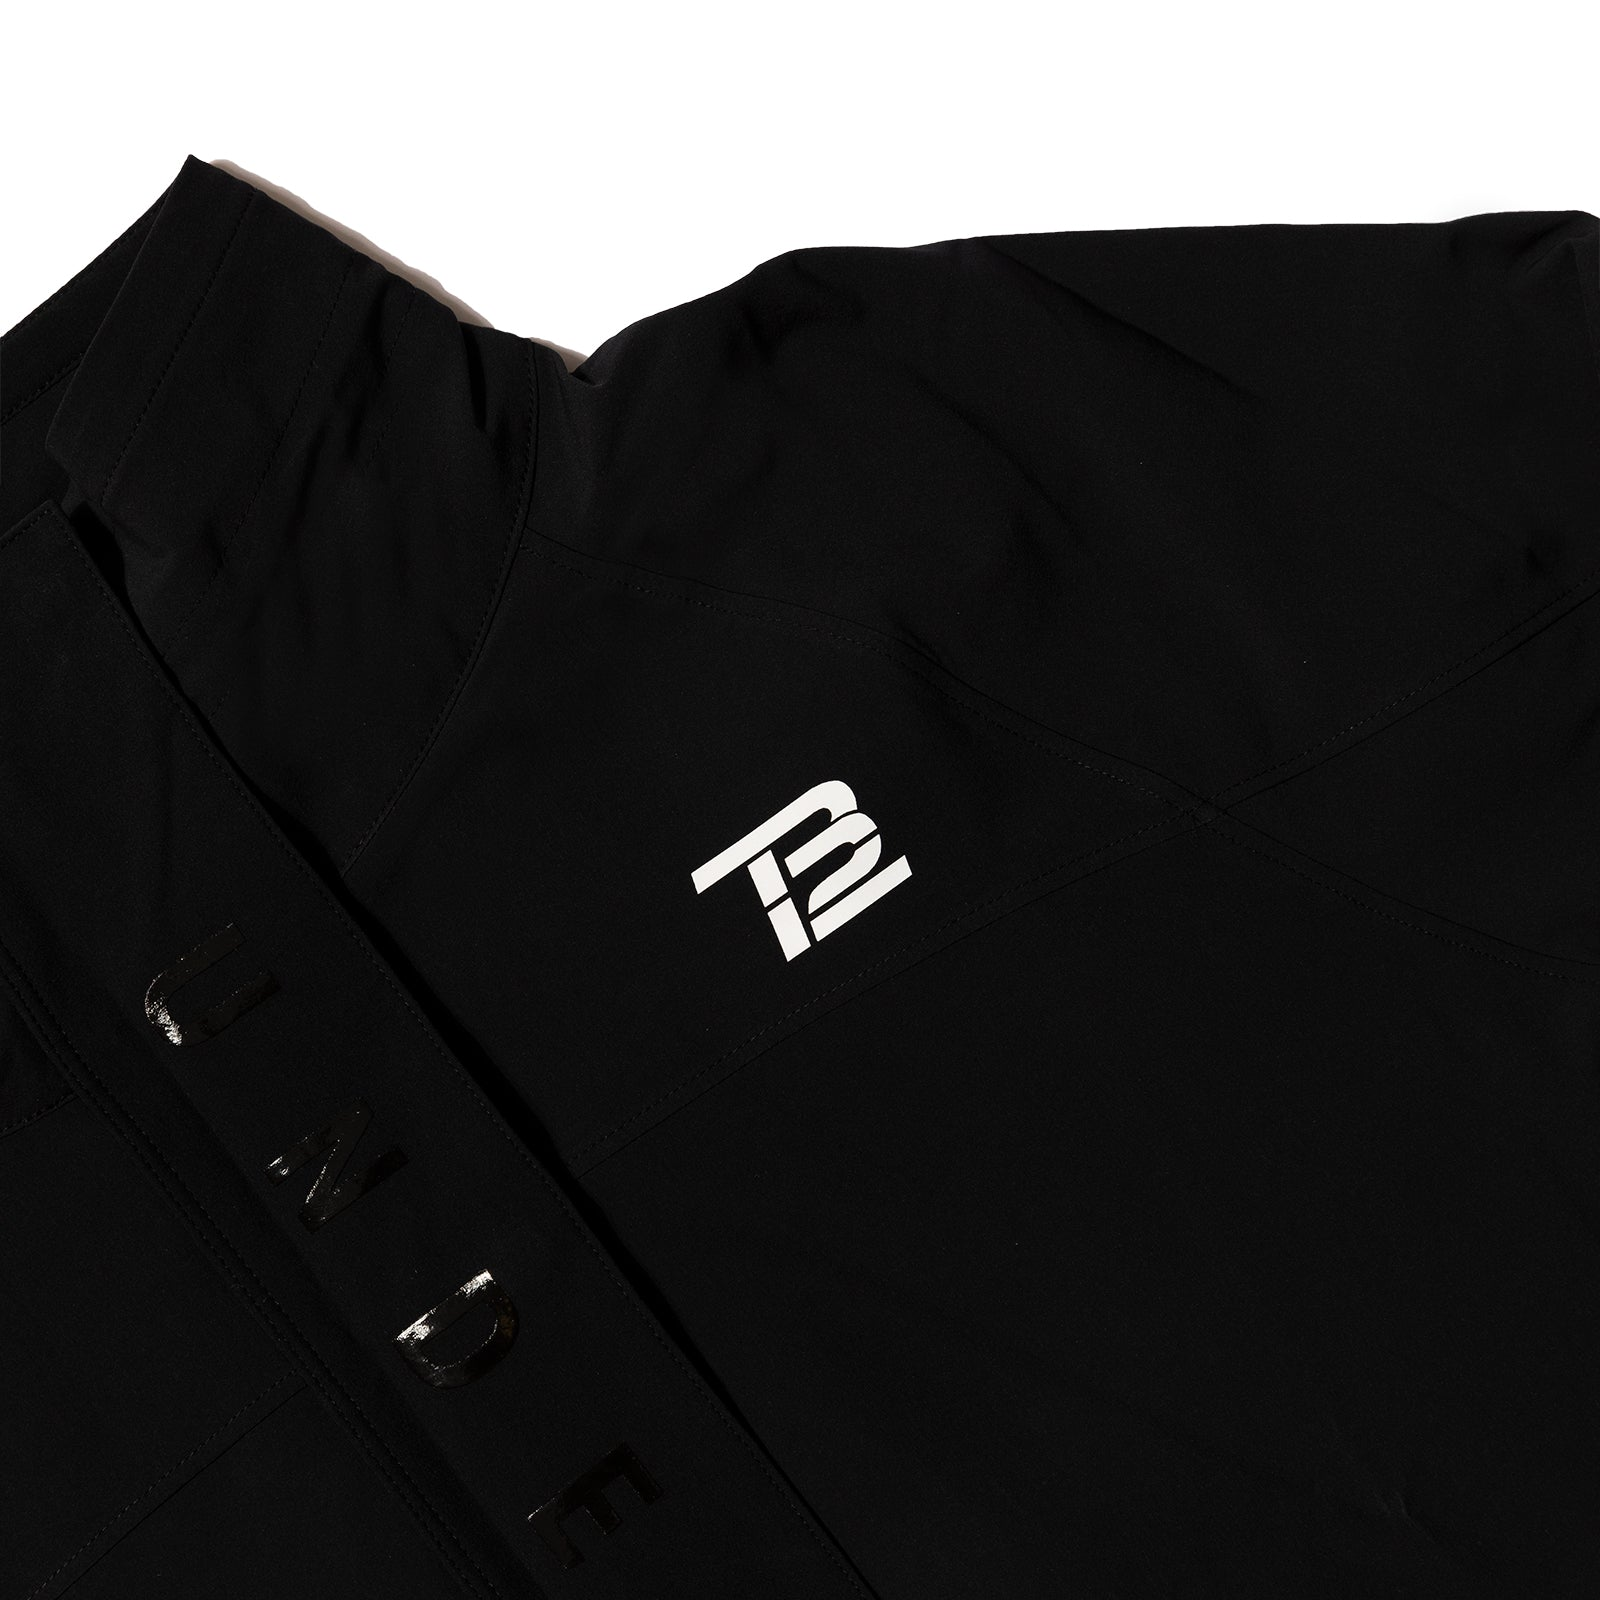 TB12 x Under Armour Women's Recovery Jacket